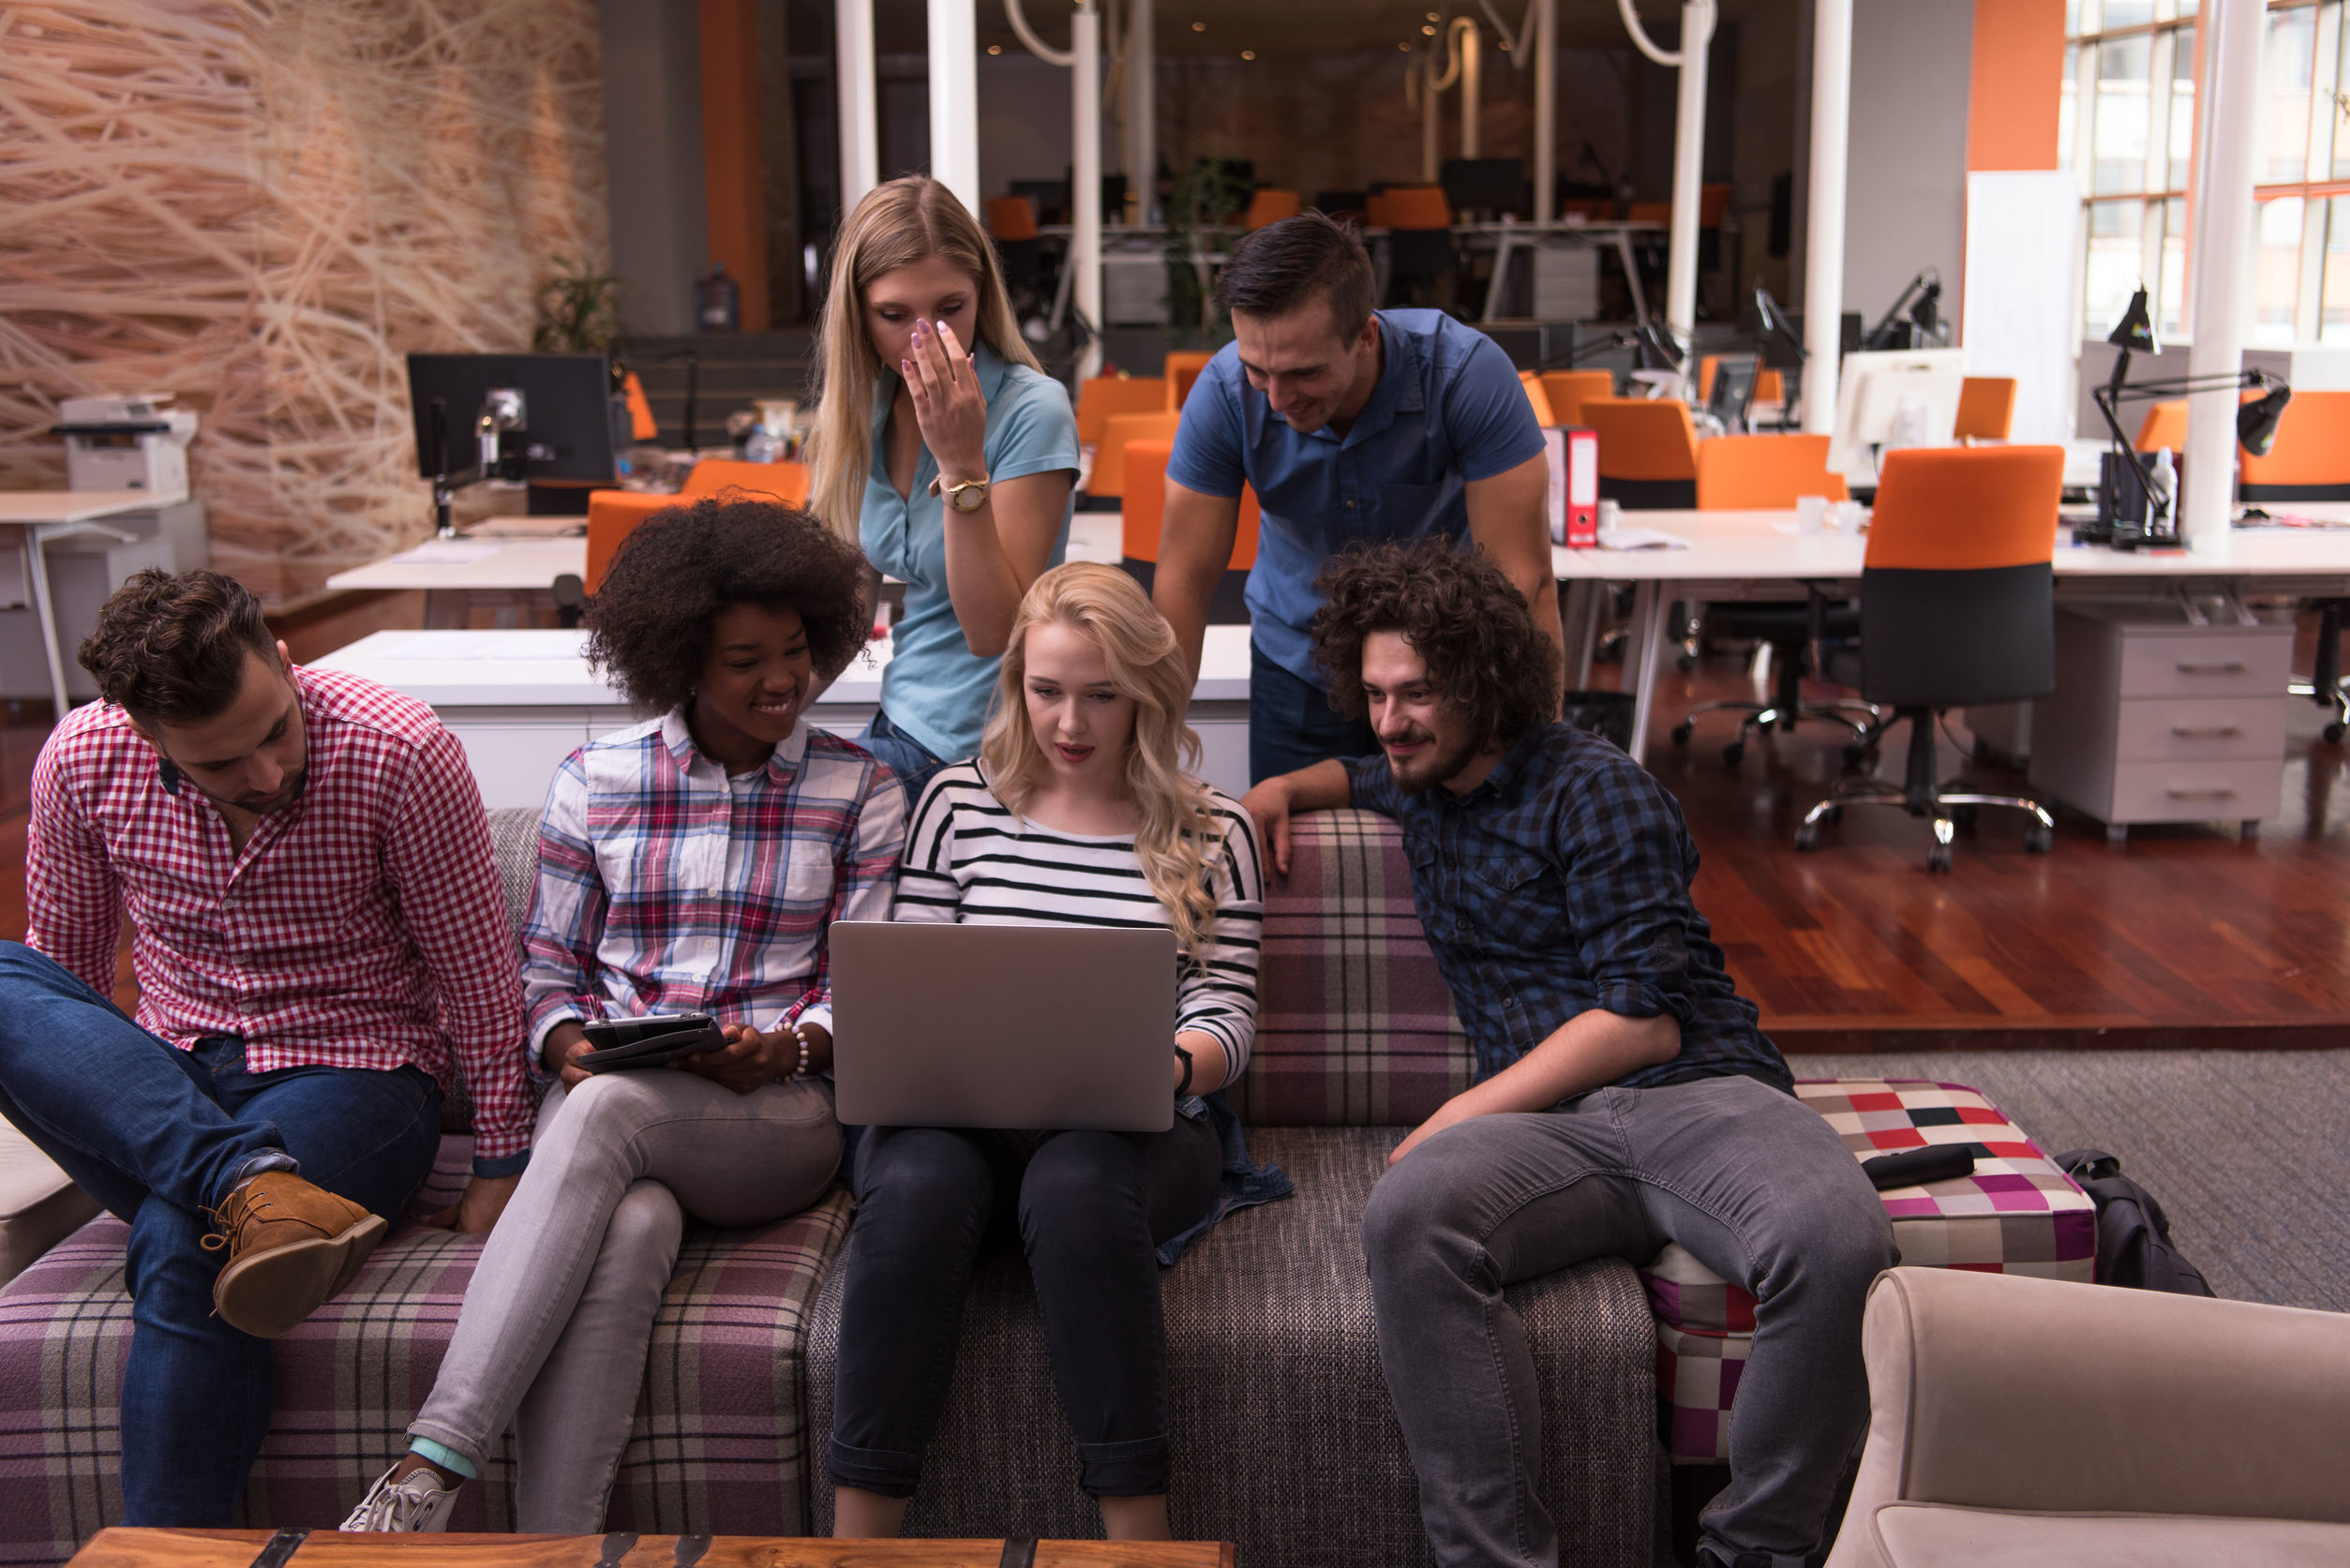 A diverse team around a laptop, illustrating the gender gap in tech